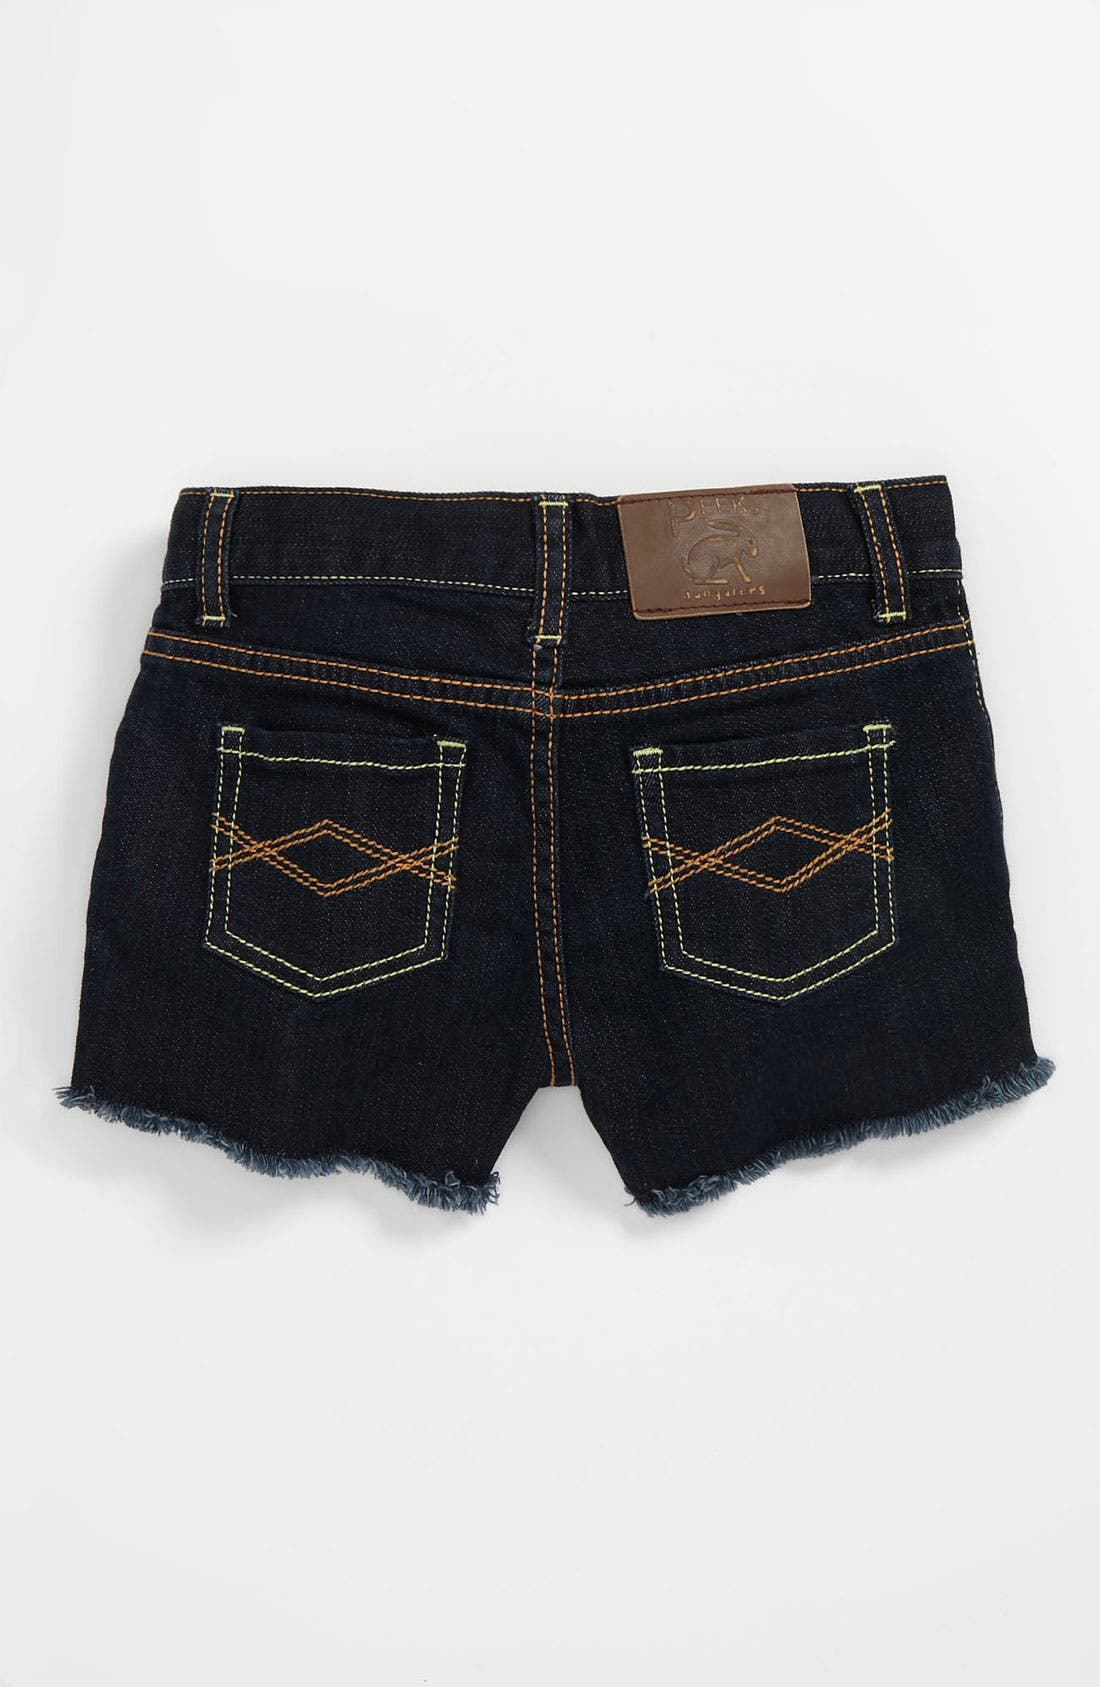 Main Image - Peek 'New Morgan' Denim Shorts (Big Girls)